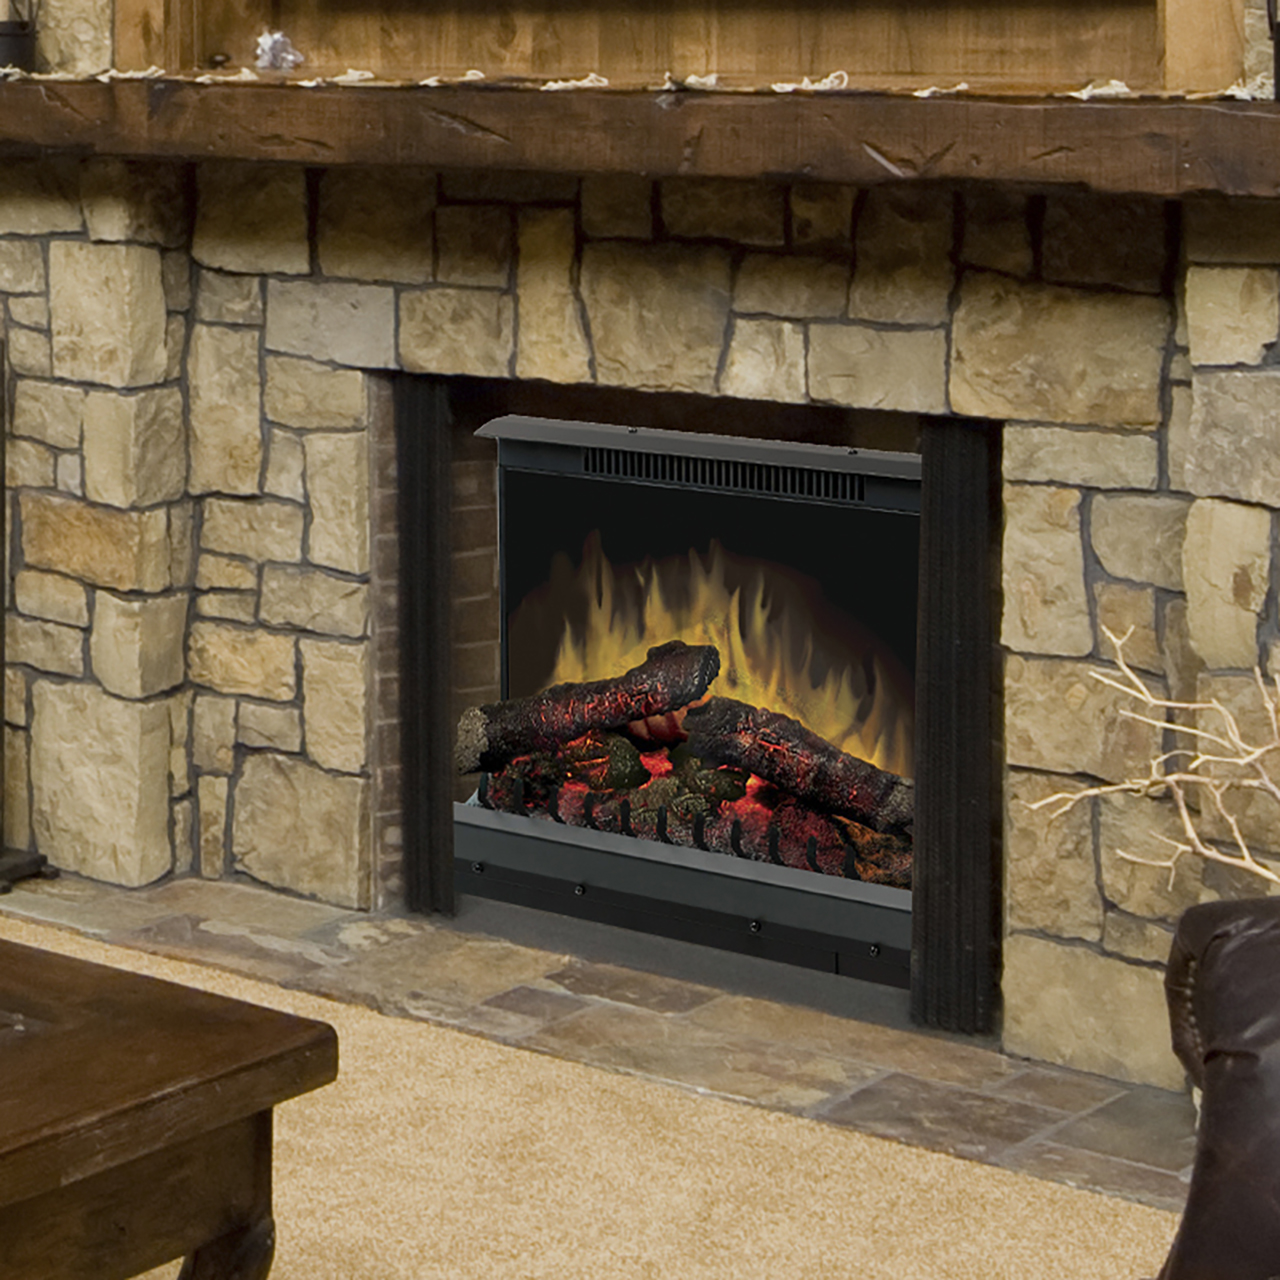 Dimplex Deluxe 23 Log Set Electric Fireplace Insert Dfi